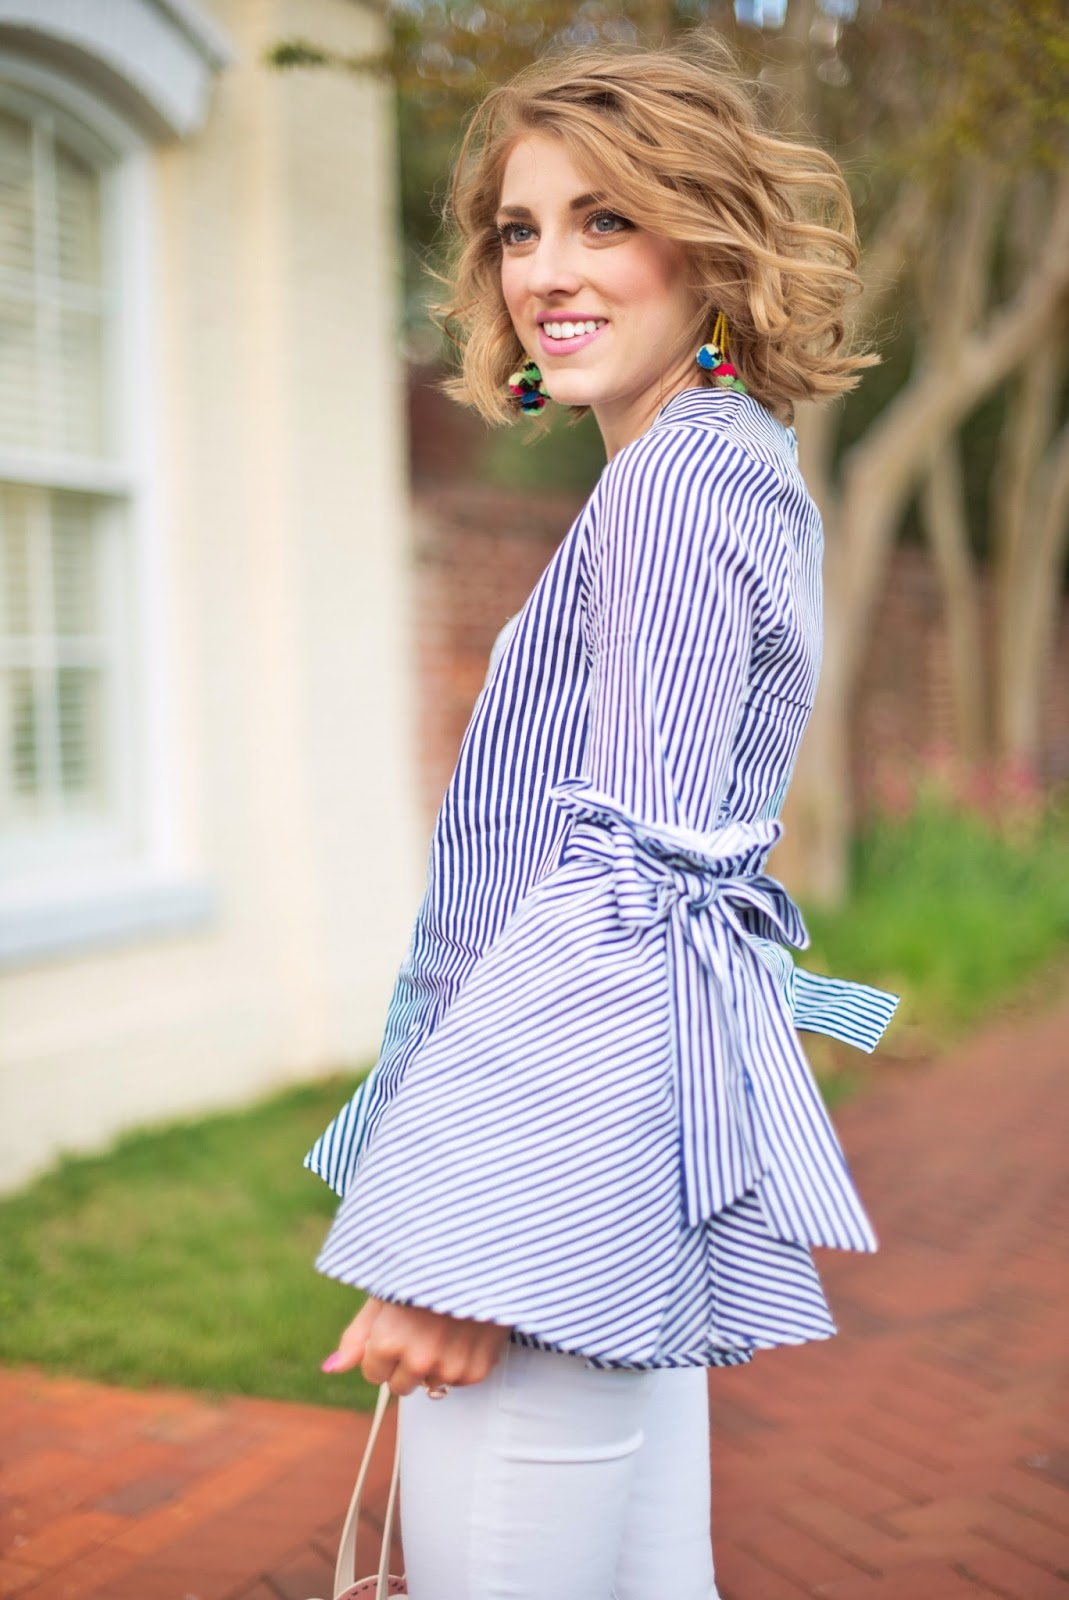 Blue & white with bell sleeves - See more on Something Delightful Blog